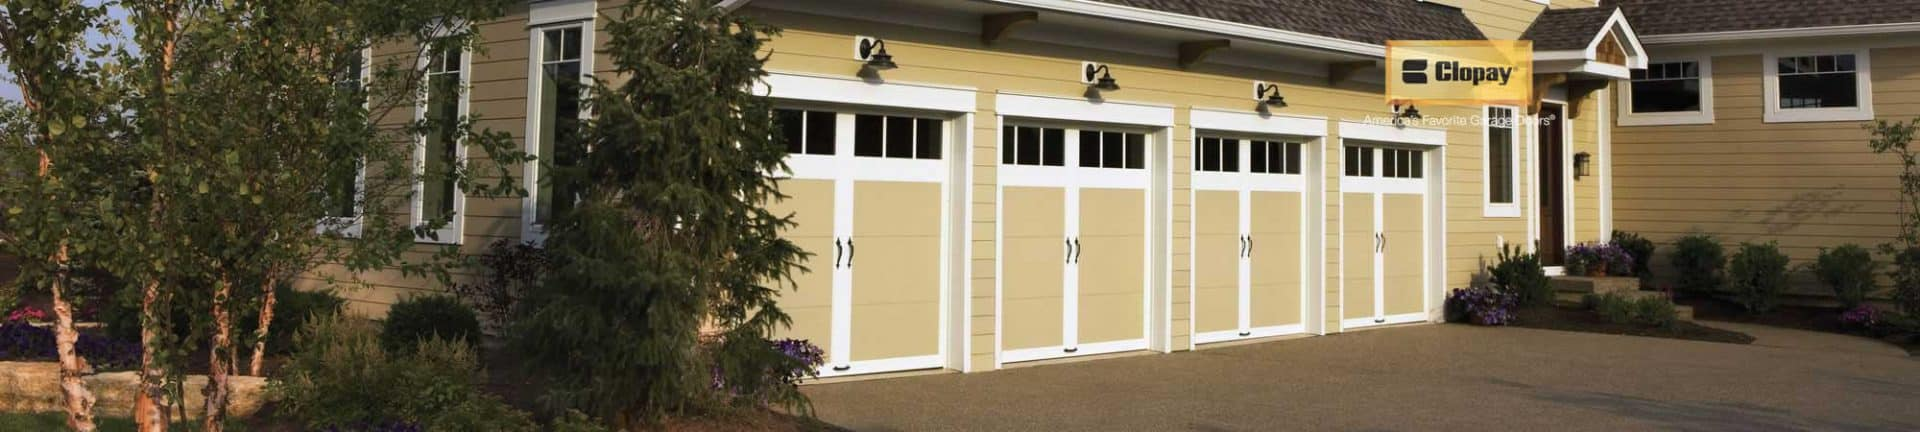 Four Clopay Garage Doors for a residential home installed